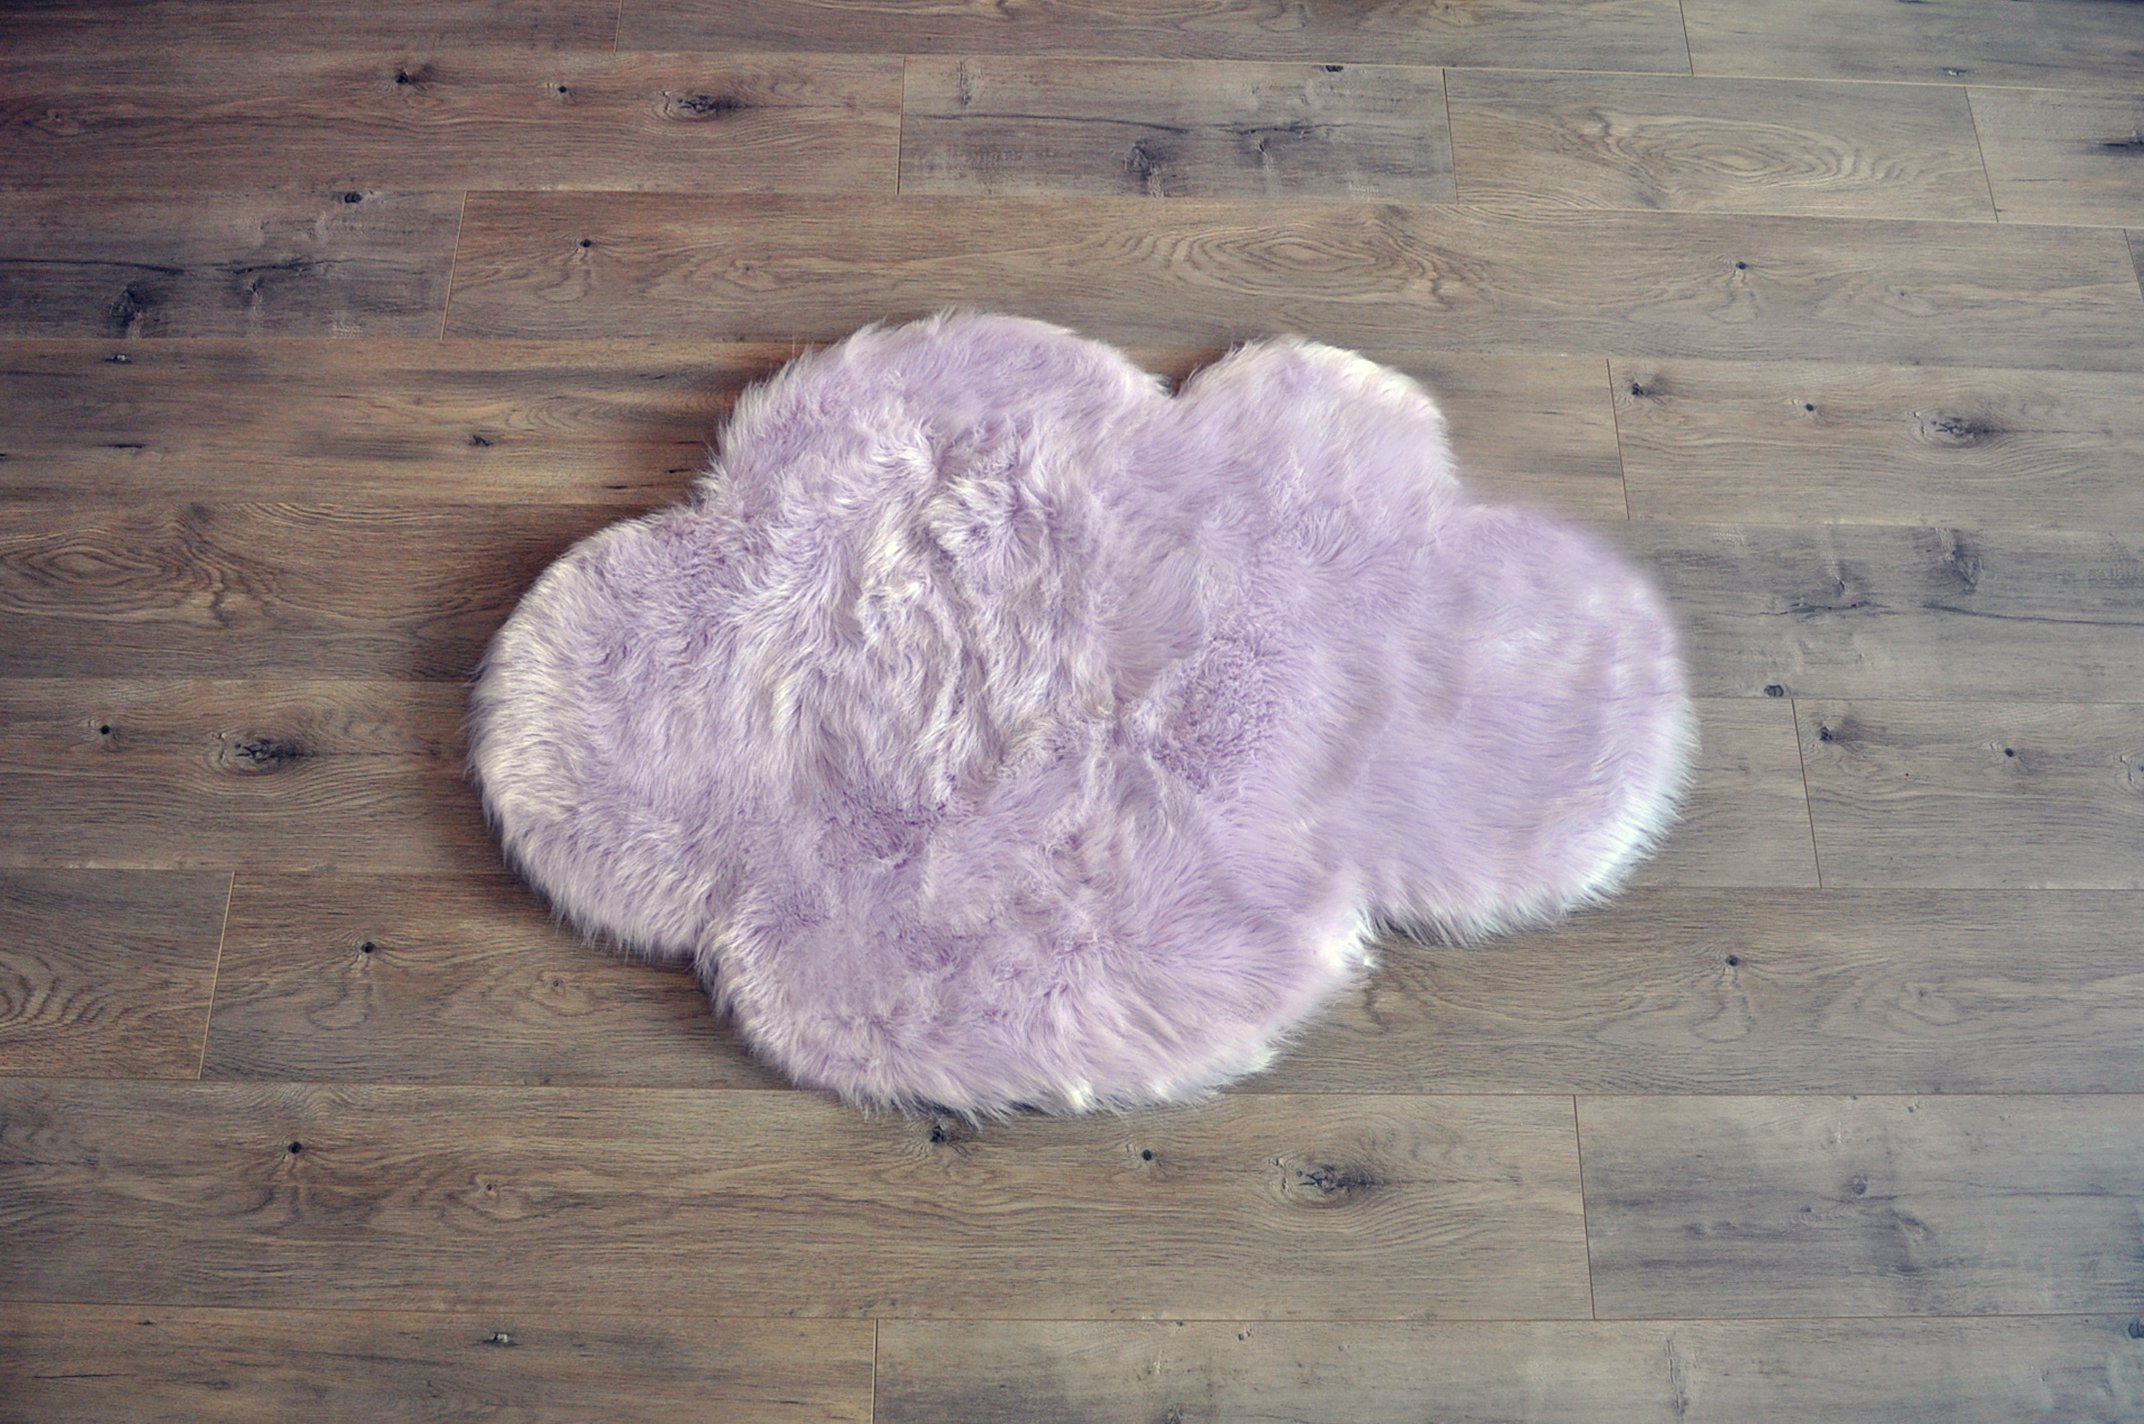 Machine Washable Faux Sheepskin Lavender Cloud Area Rug 32'' x 44'' - Soft and silky - Perfect for baby's room, nursery, playroom (2' 7'' x 3' 7'') - Lavender Cloud